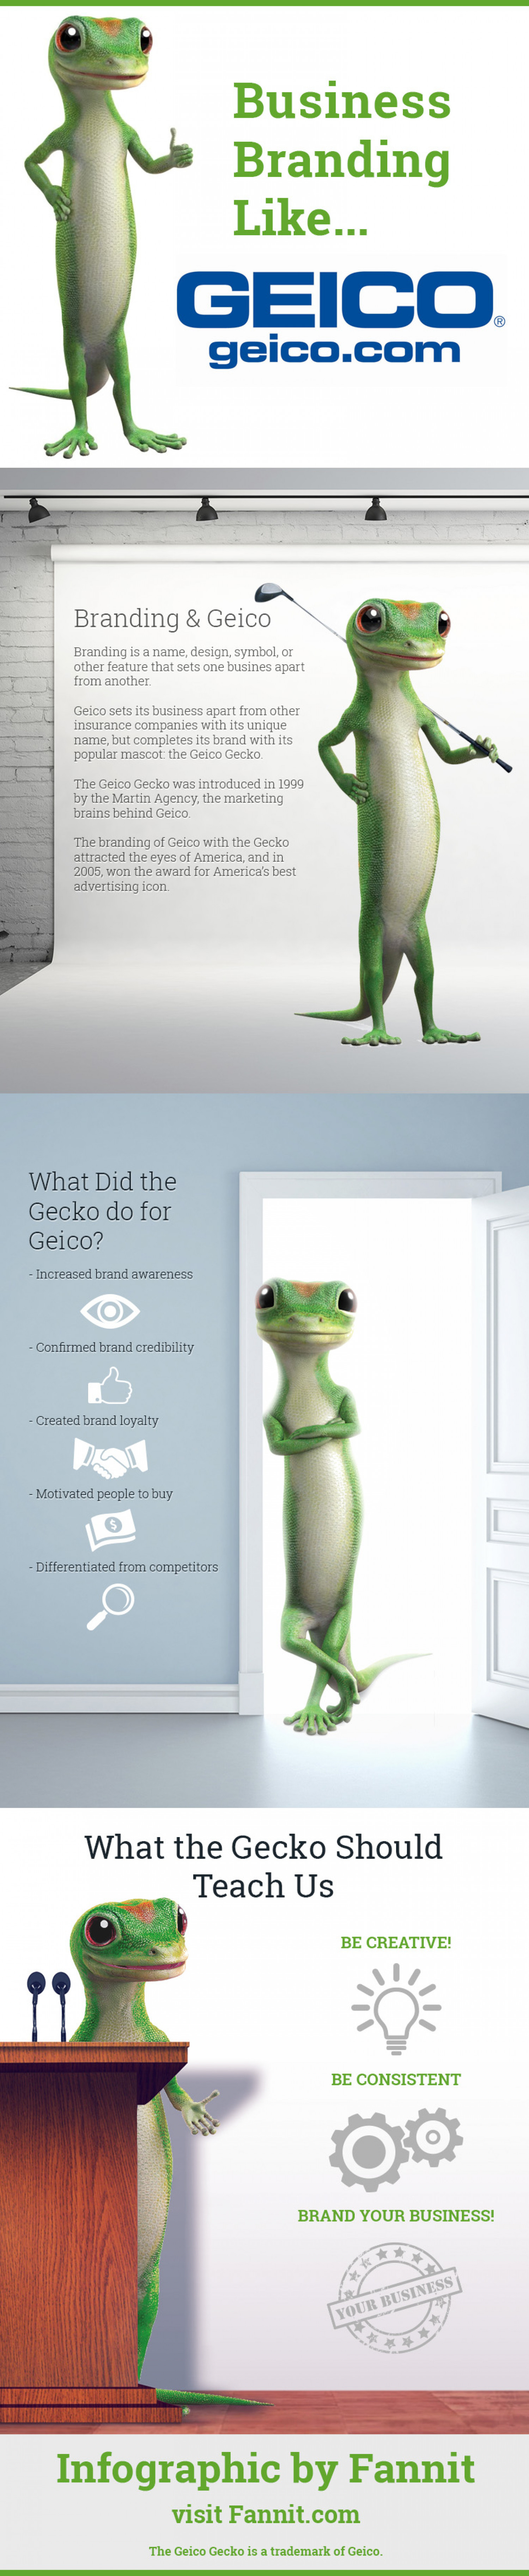 15% And A Gecko - Business Branding Like Geico Infographic